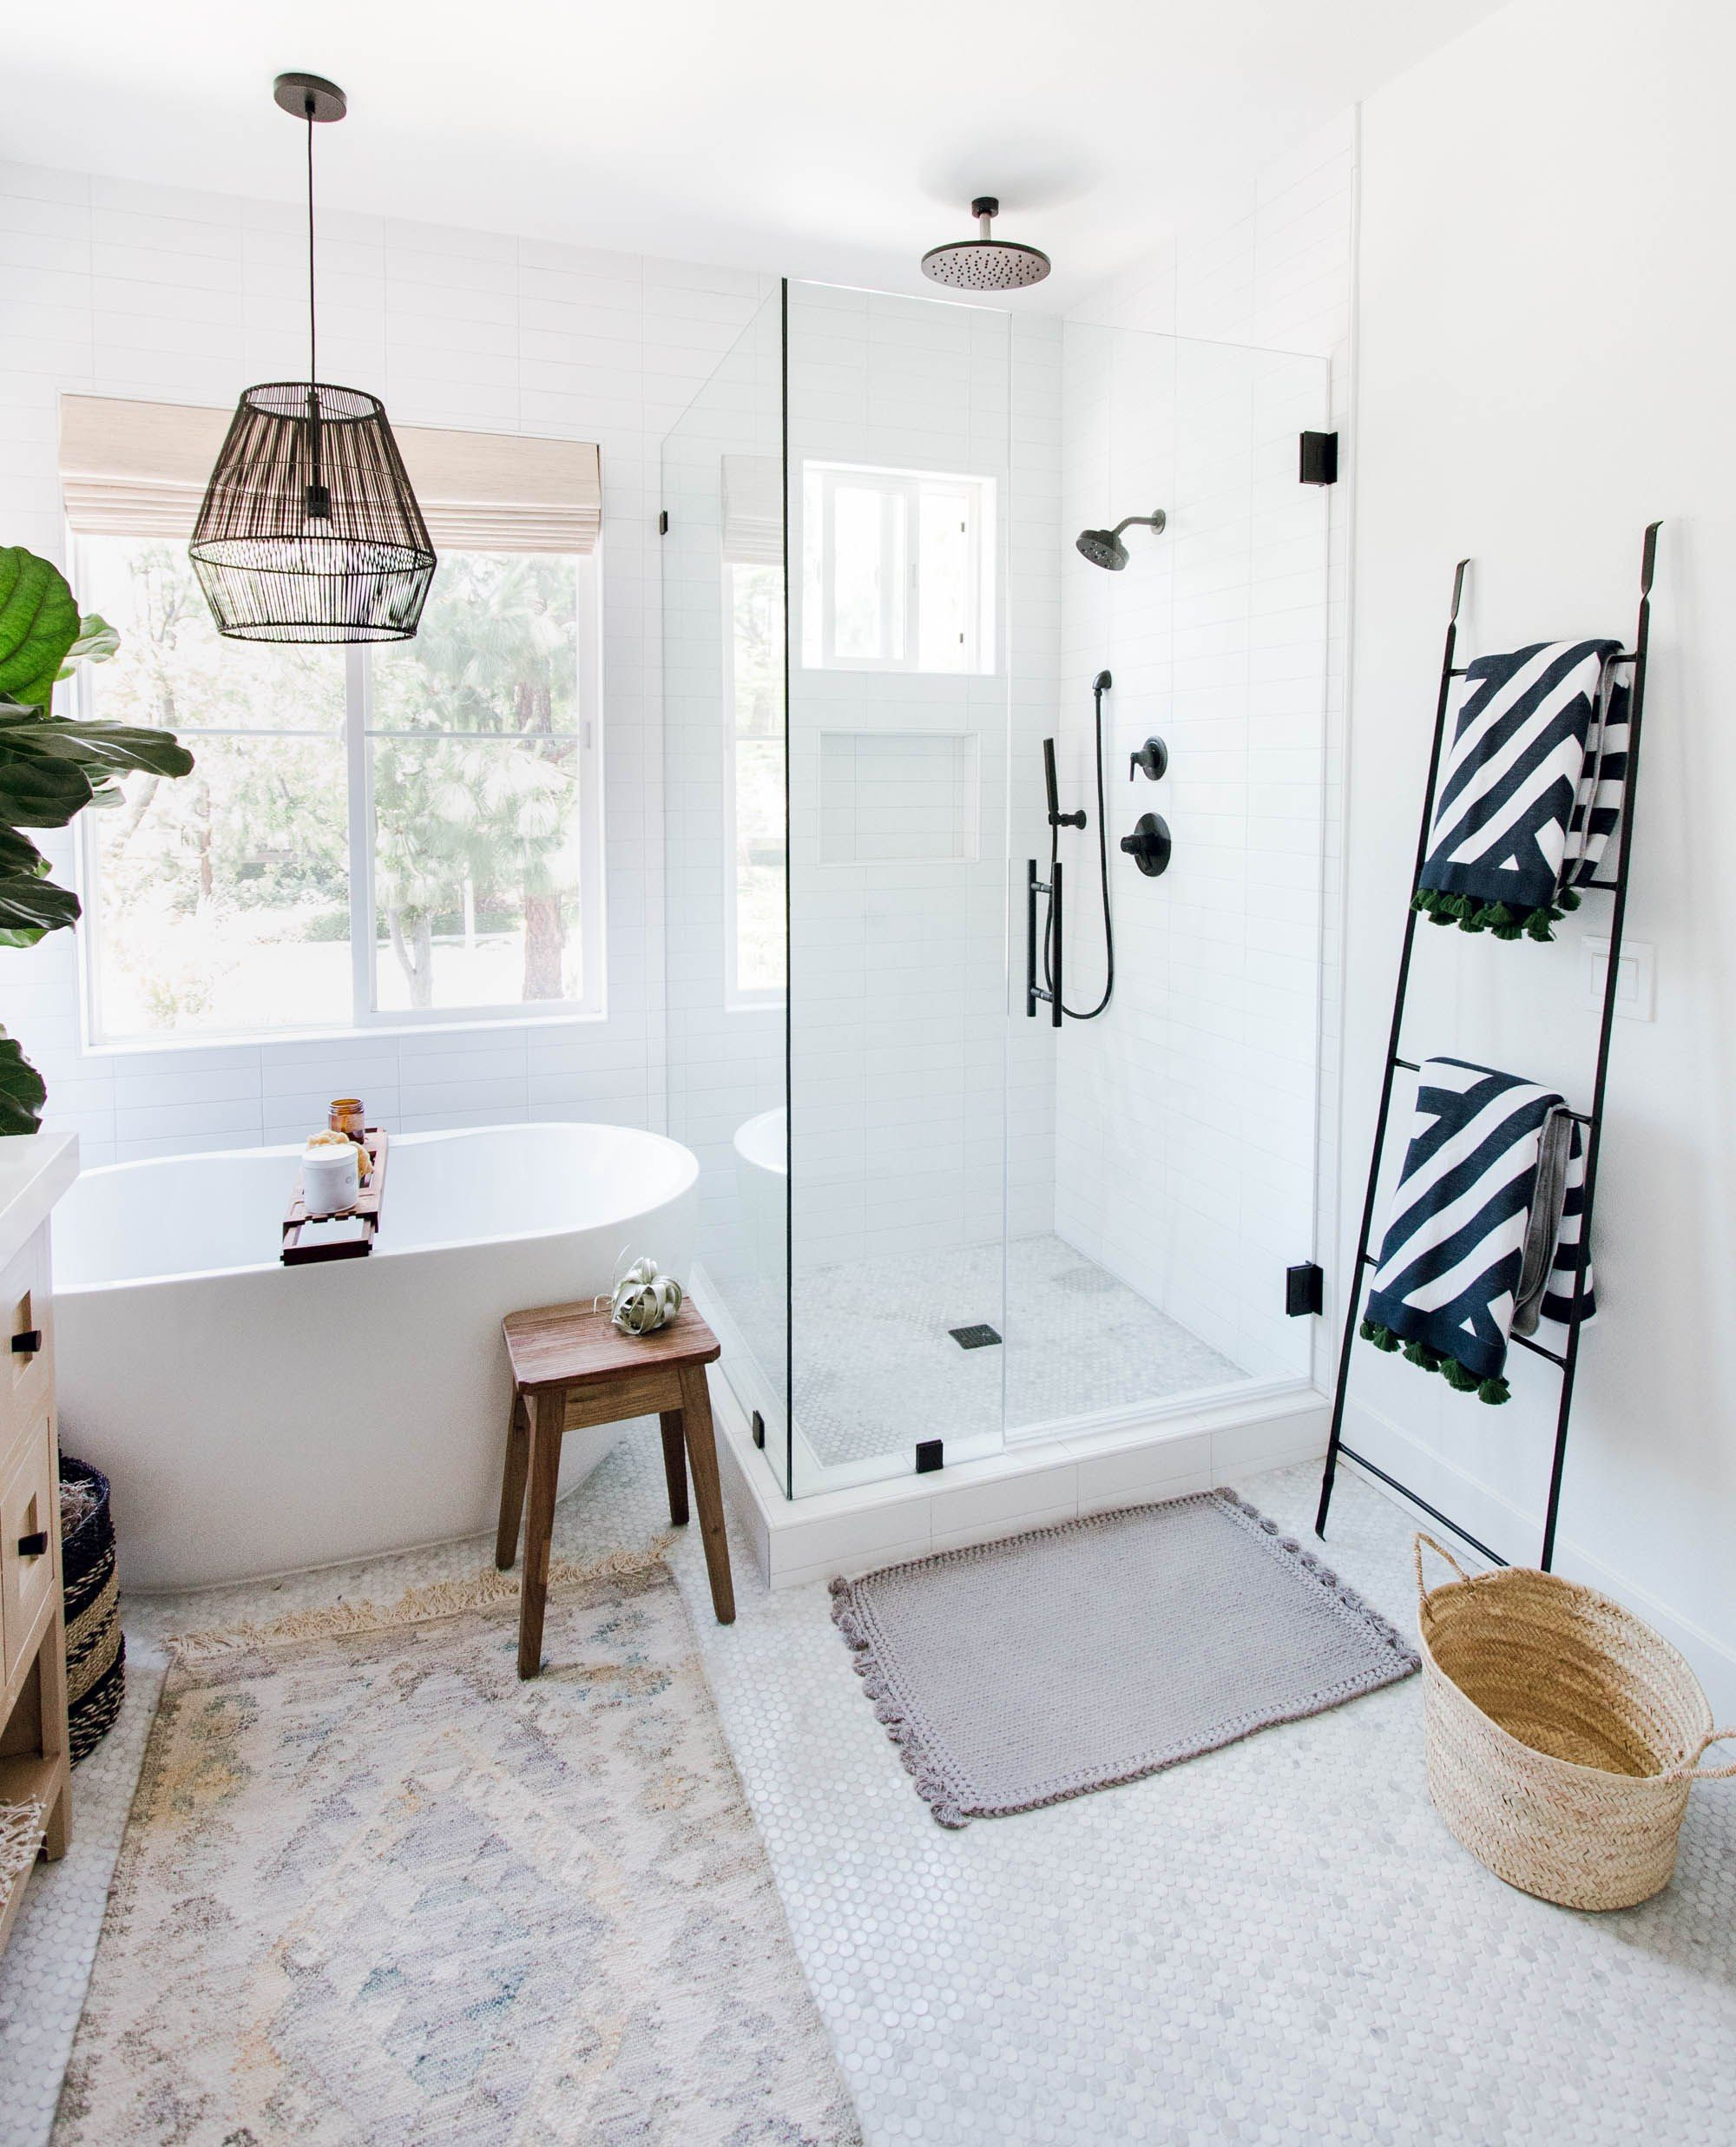 5 Things You Need For A Coastal Home With Images Bathroom